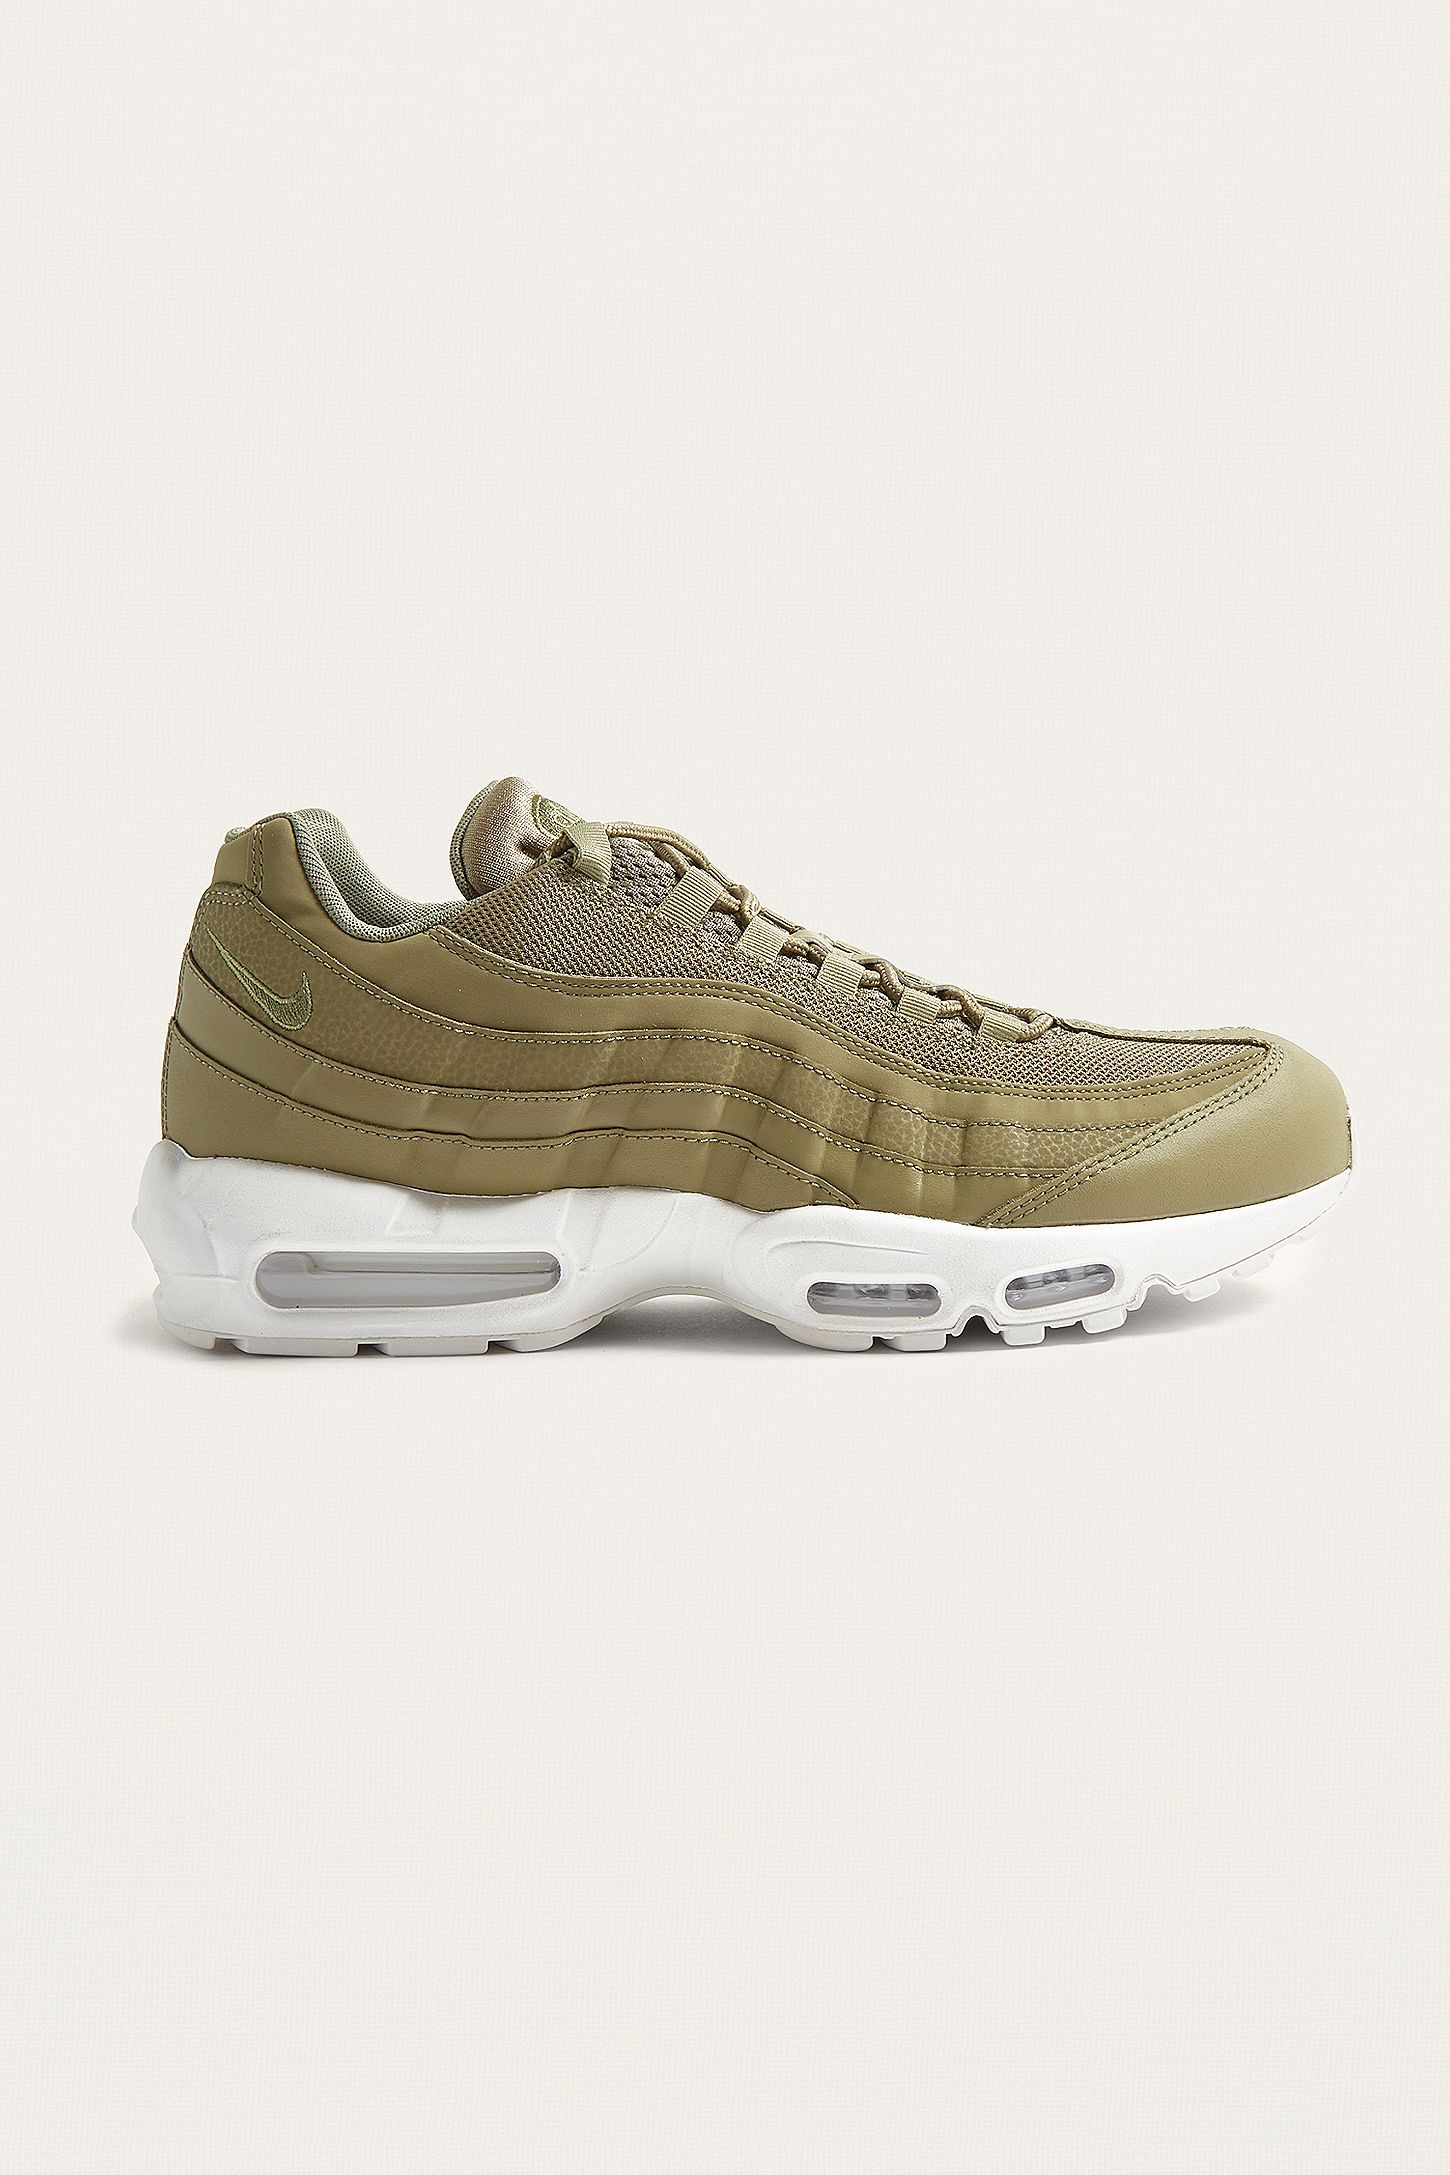 new style f3678 3f2f7 Nike Air Max 95 Essential Trainers. Click on image to zoom. Hover to zoom.  Double Tap to Zoom